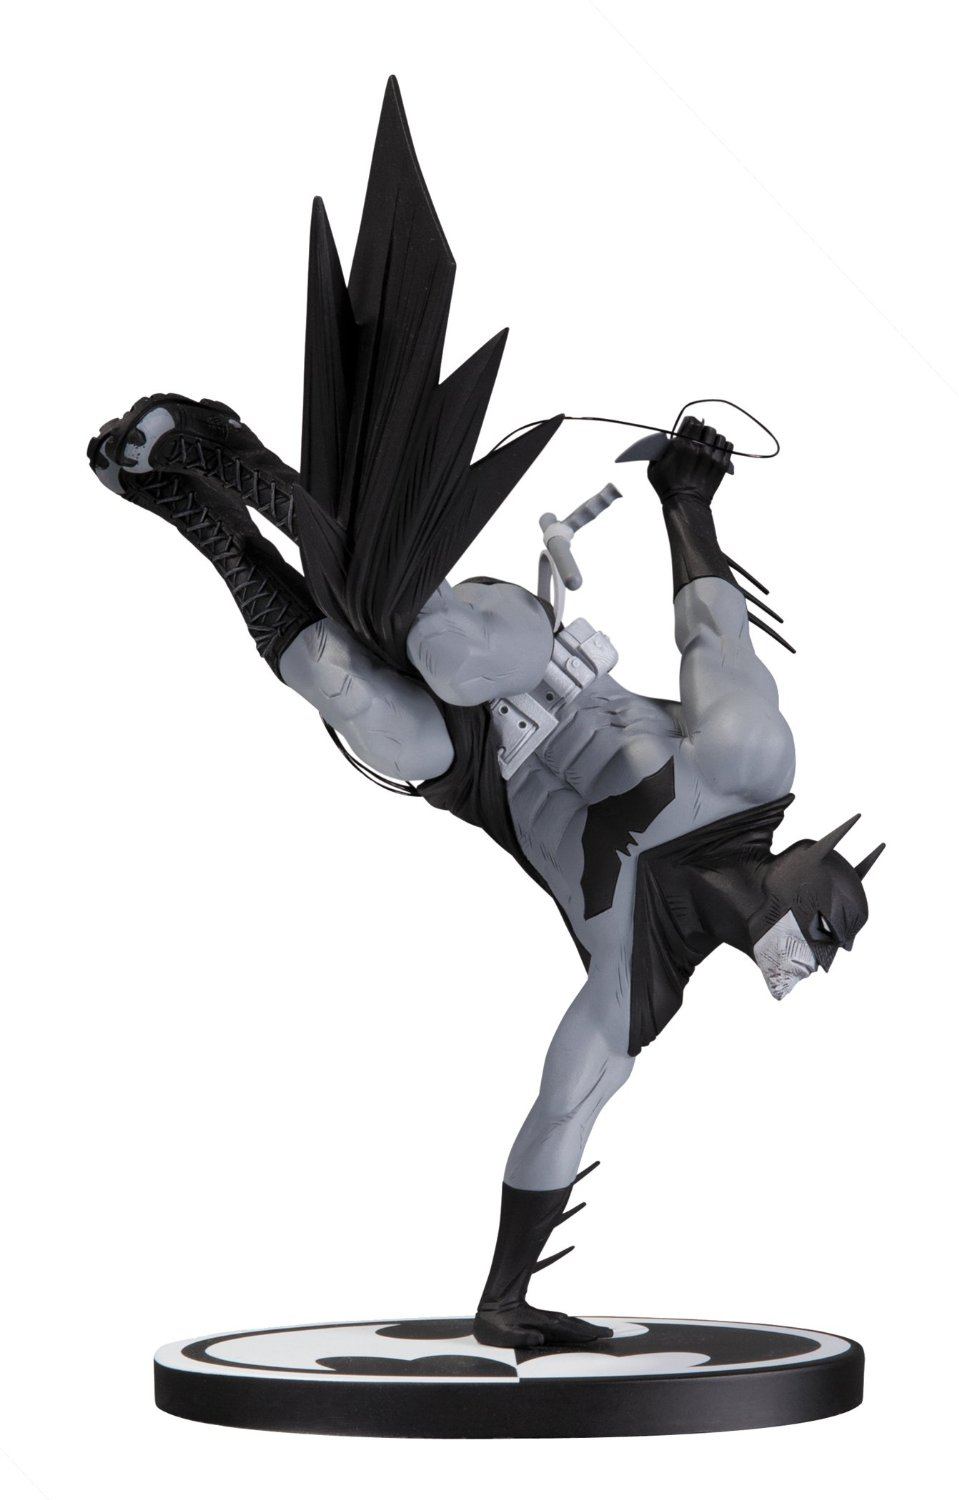 Black & White Batman Statue by Sean Murphy